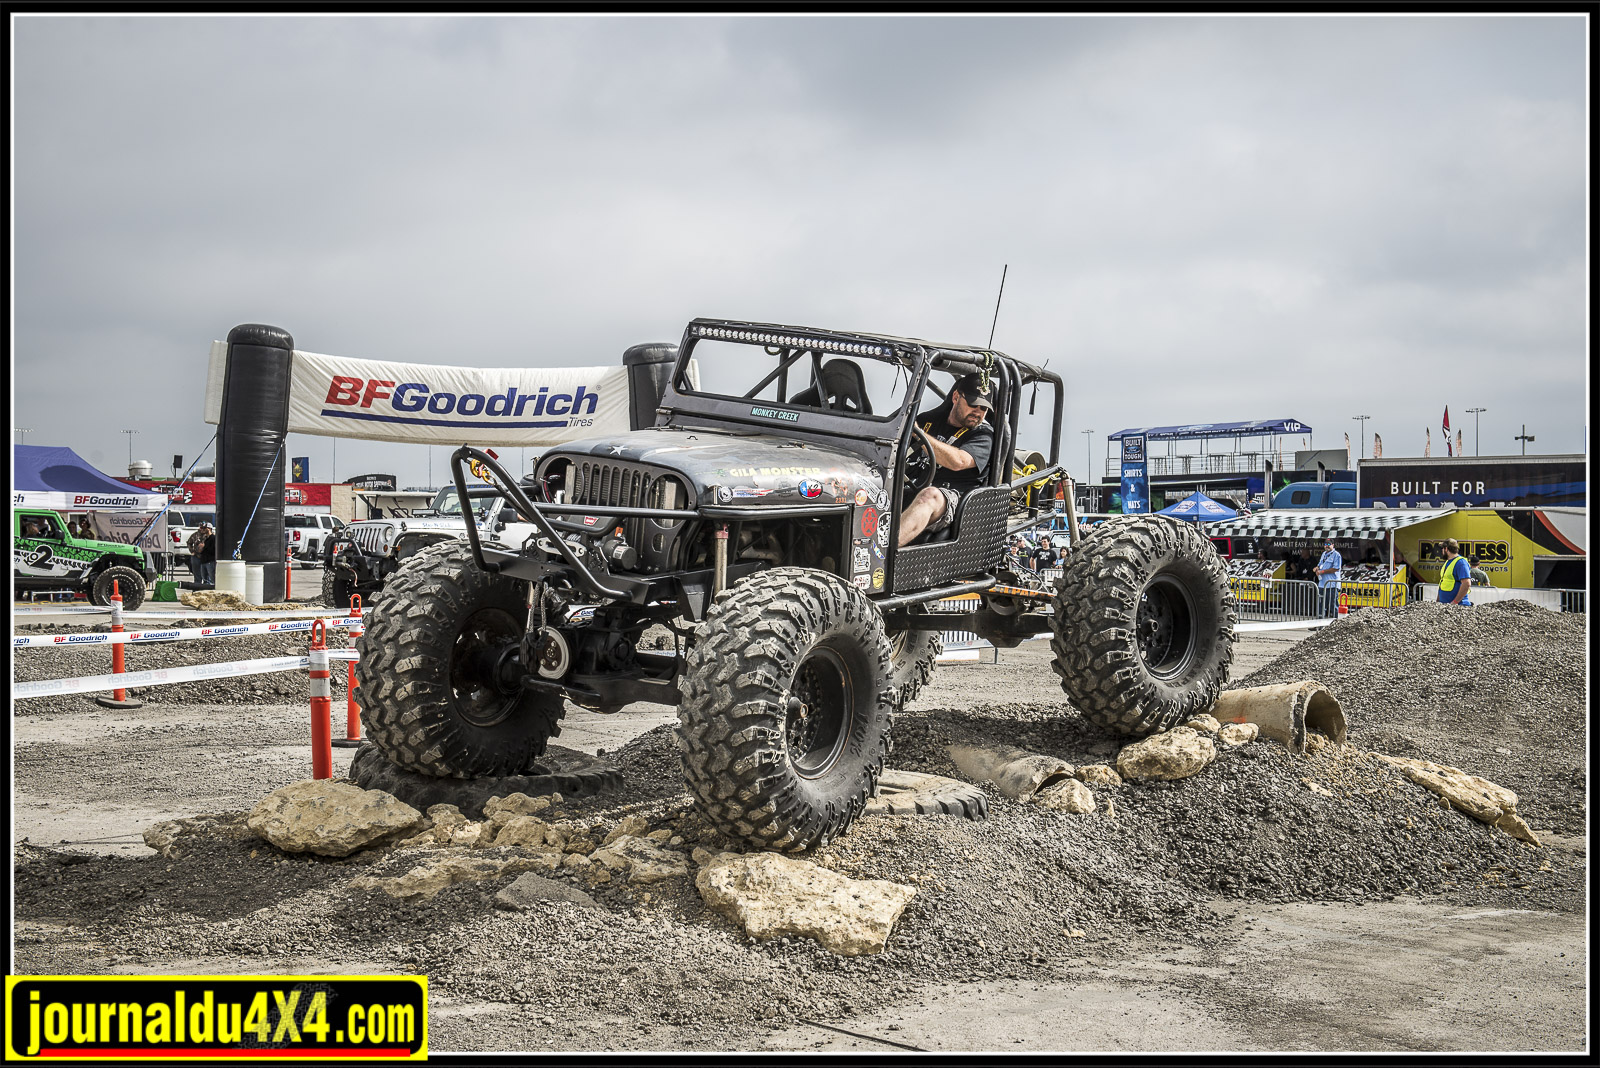 unlimited-off-road-expo-2017-7153.jpg